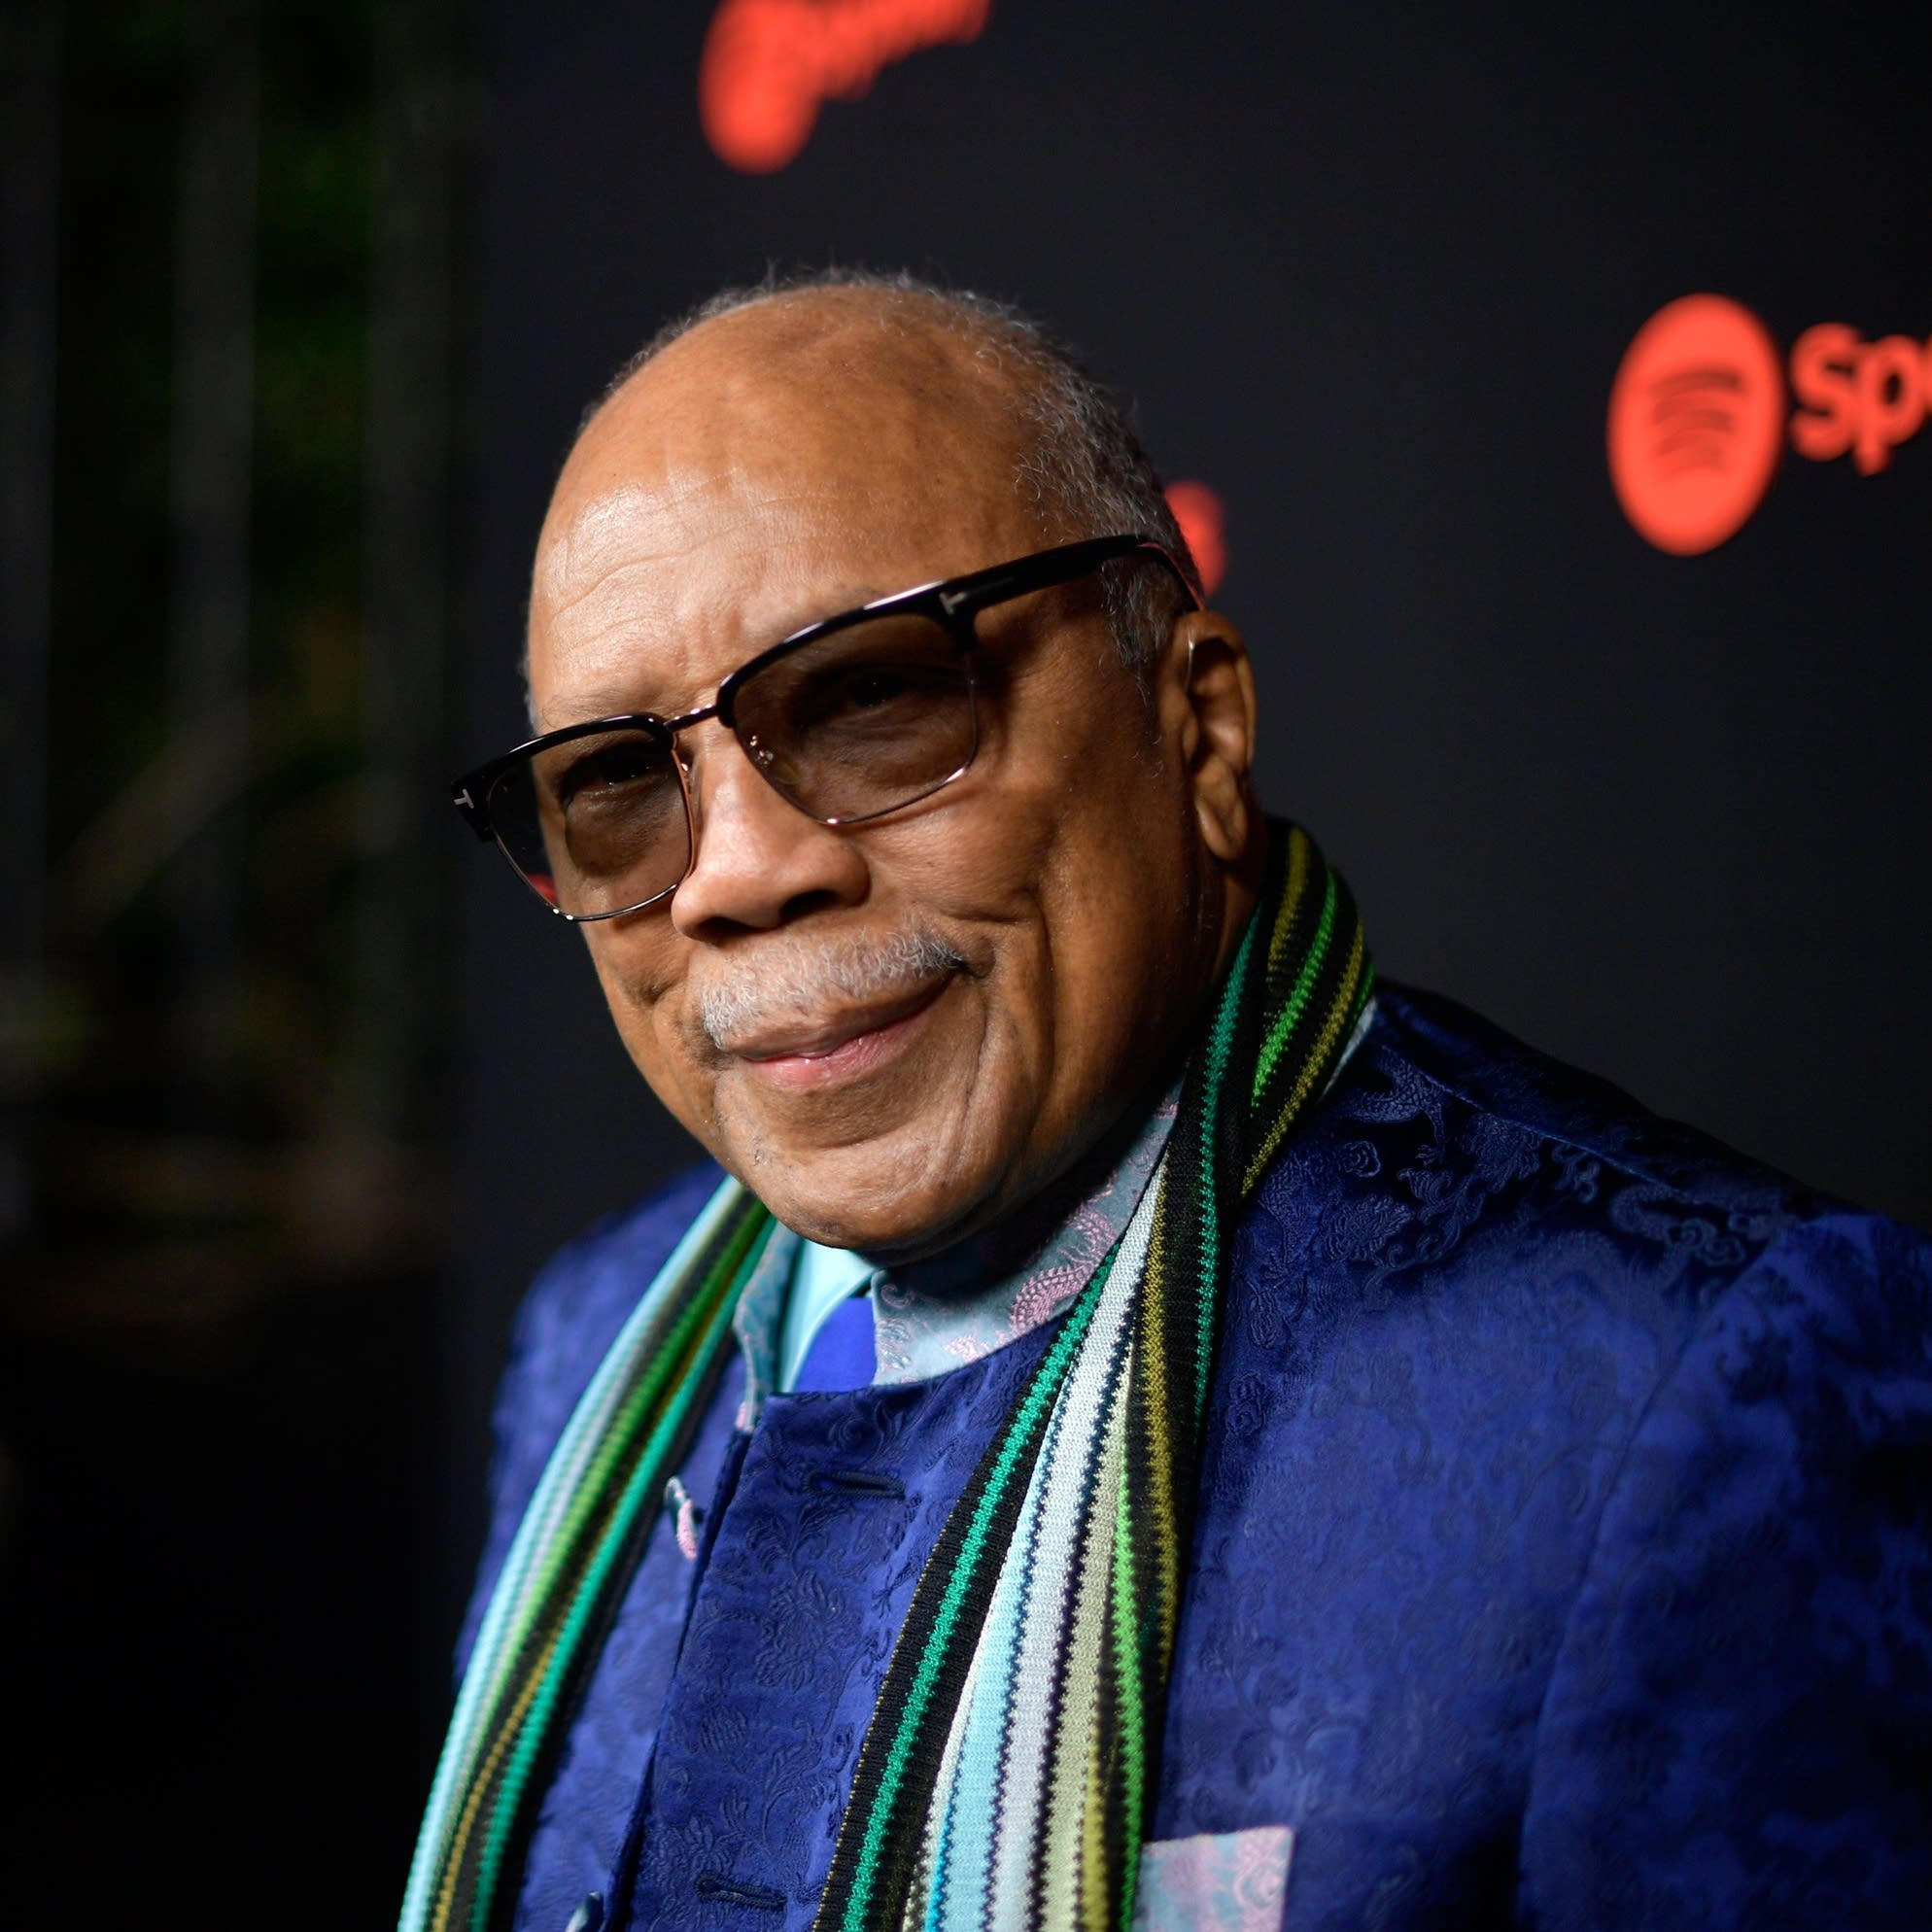 Quincy Jones arrives at a Spotify event in 2017.